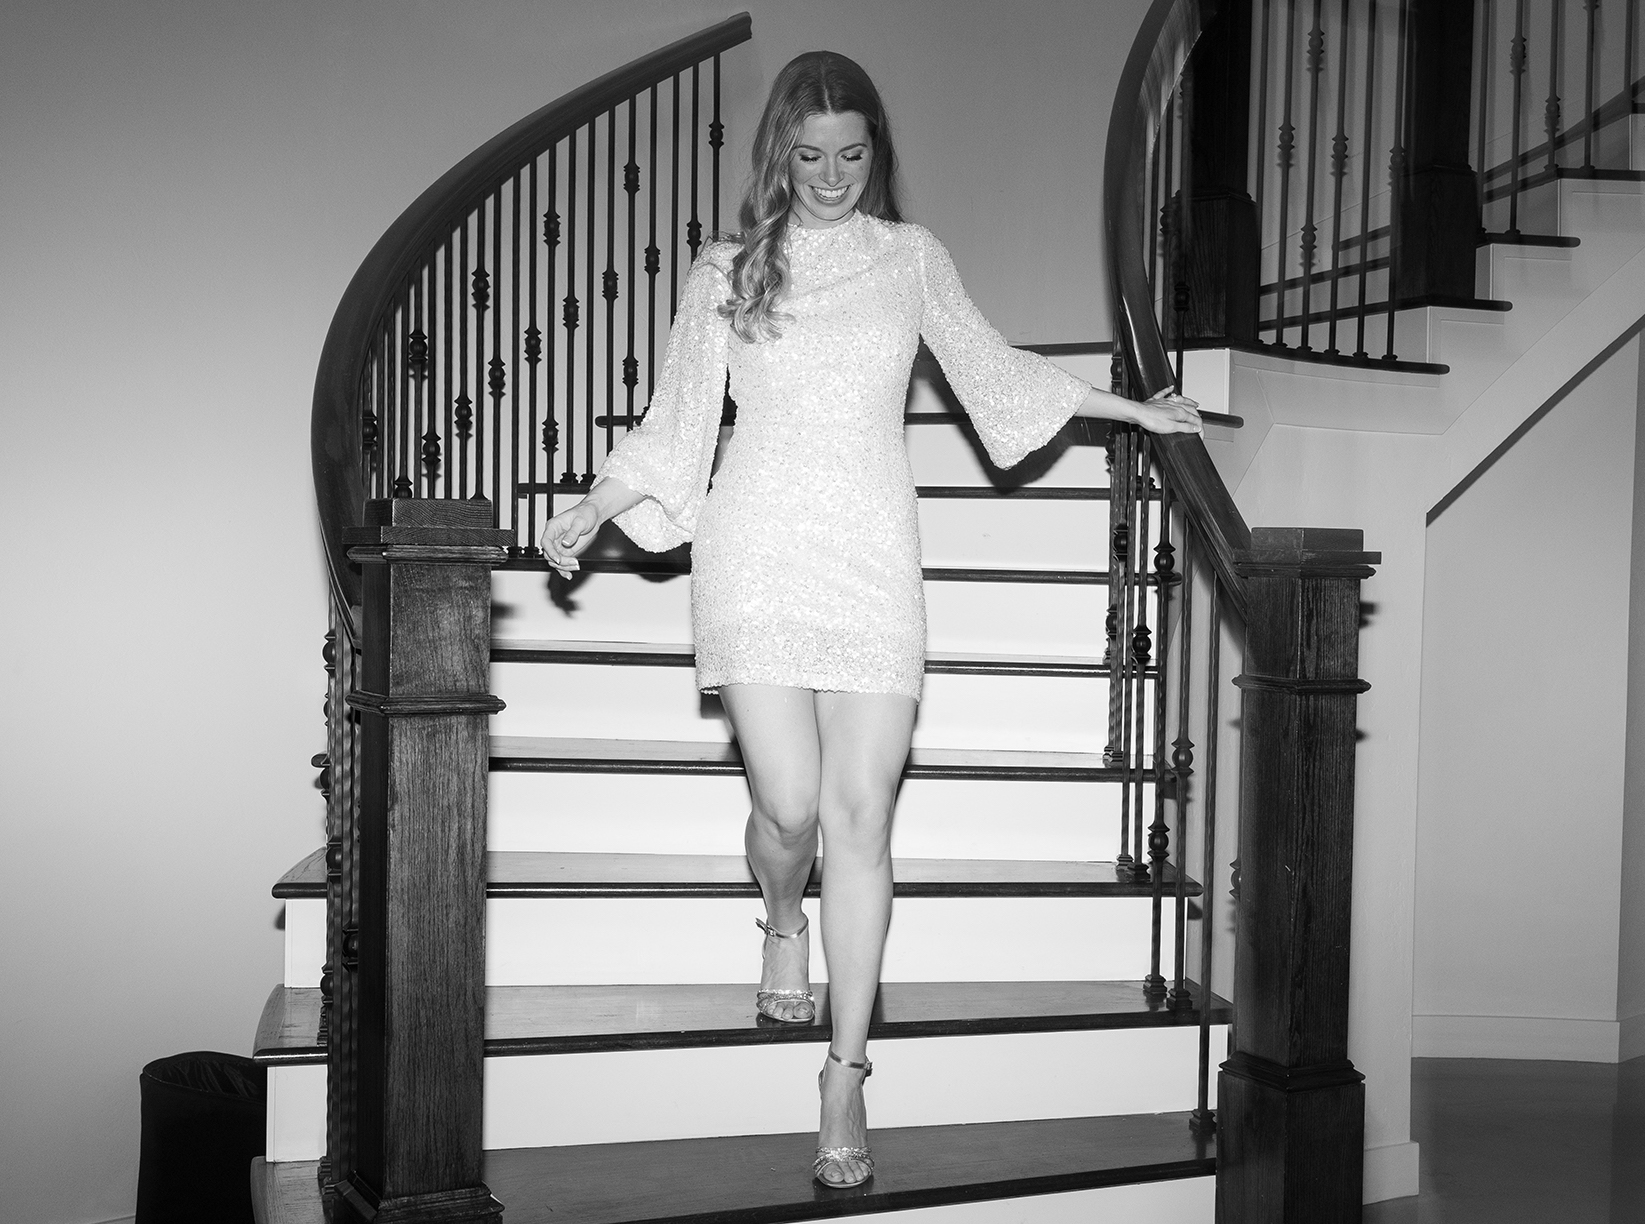 The bride walks down a spiral staircase with a shimmery white cocktail dress on.